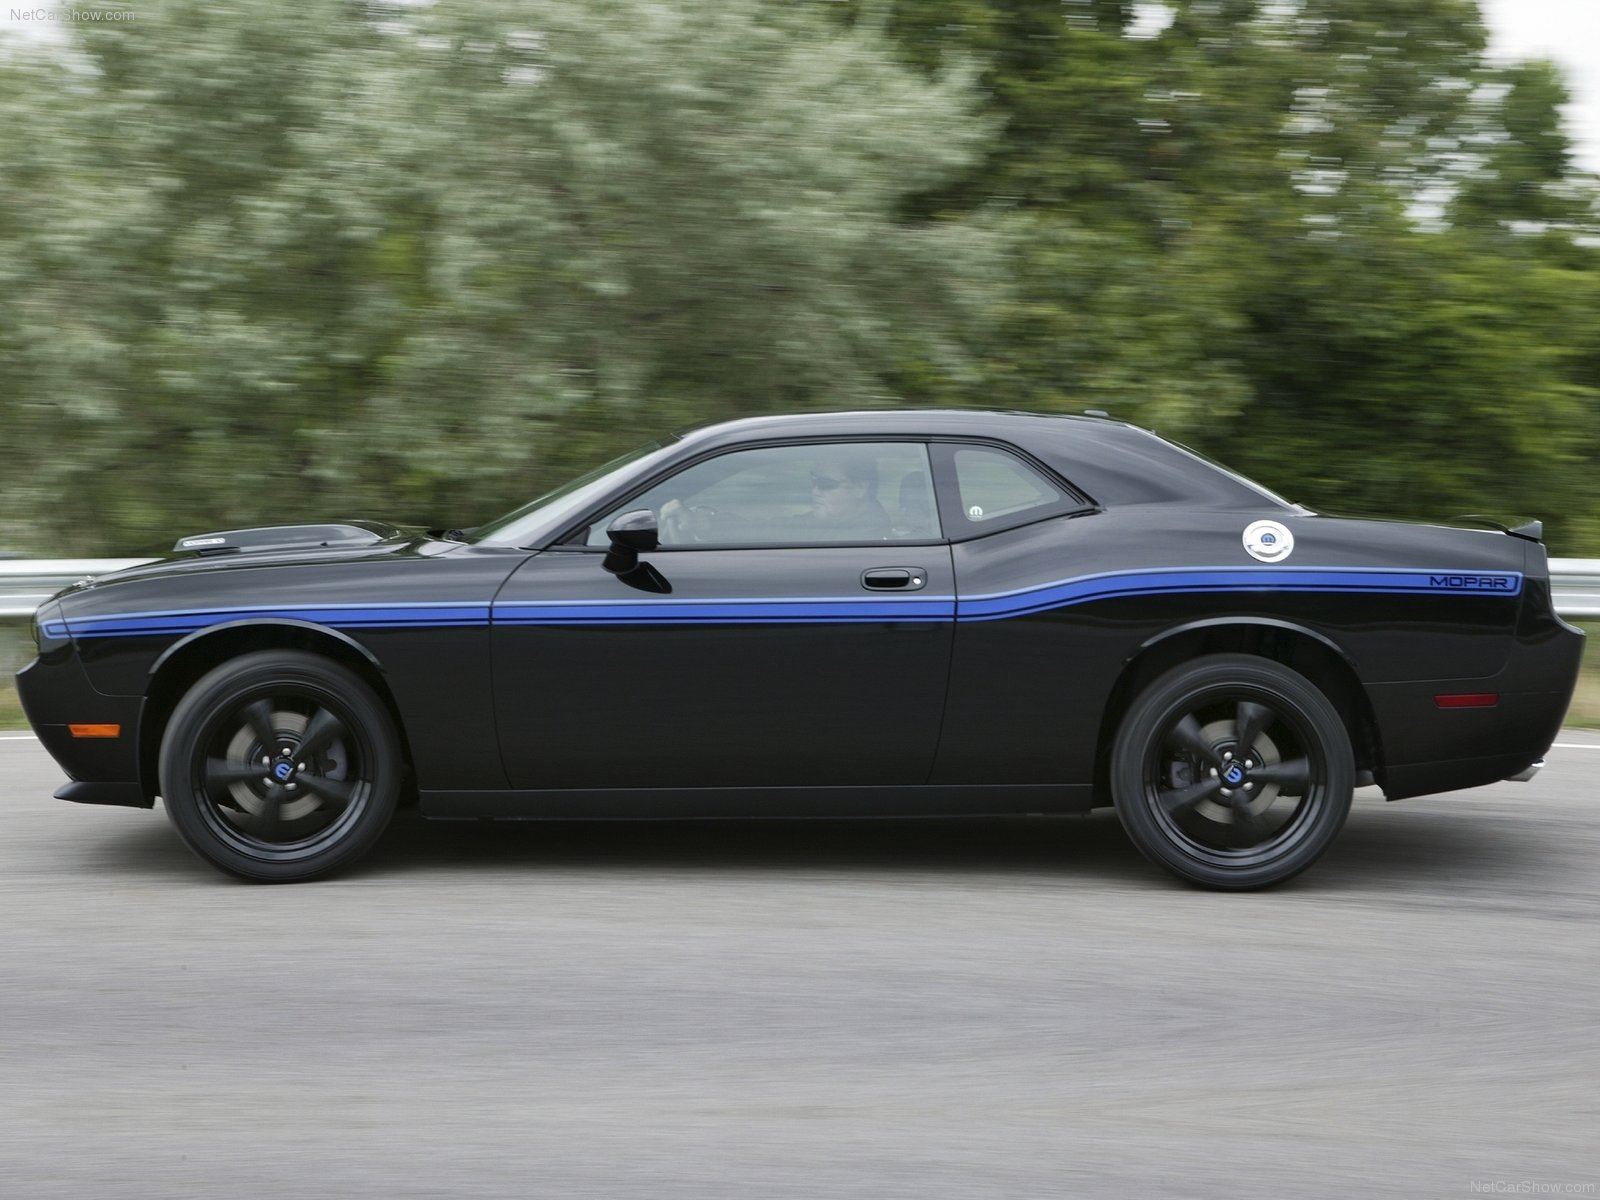 Mopar Dodge Challenger photo 74946